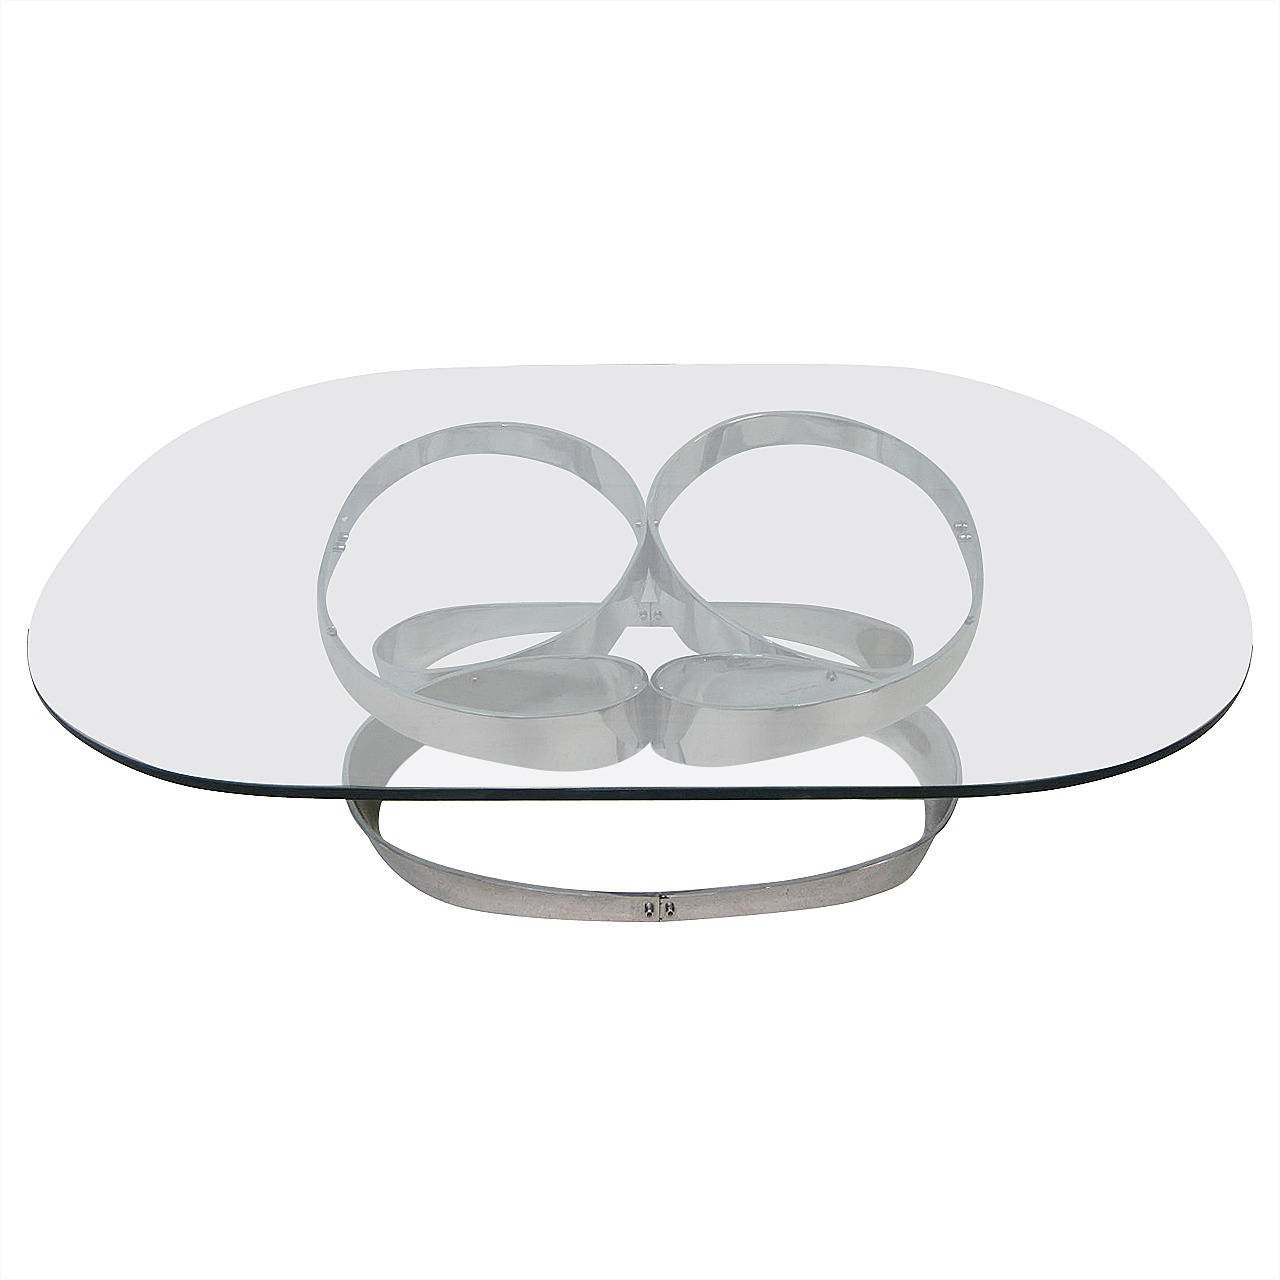 Large-Scale Chrome Ribbon Coffee Table, Mid-Century Modern